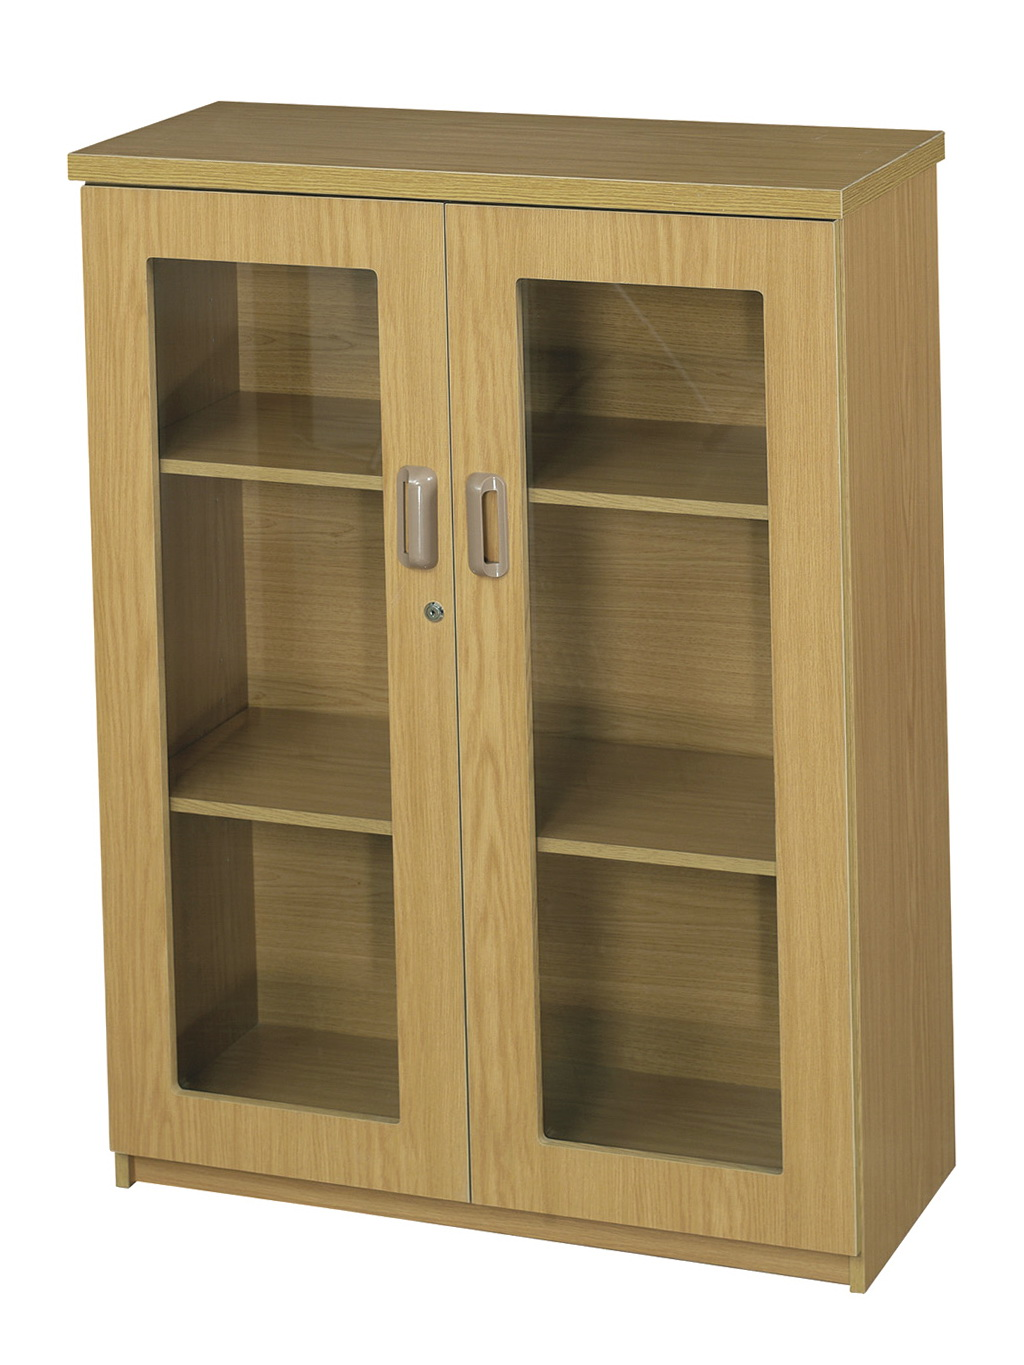 3 Shelf Bookcase With Doors